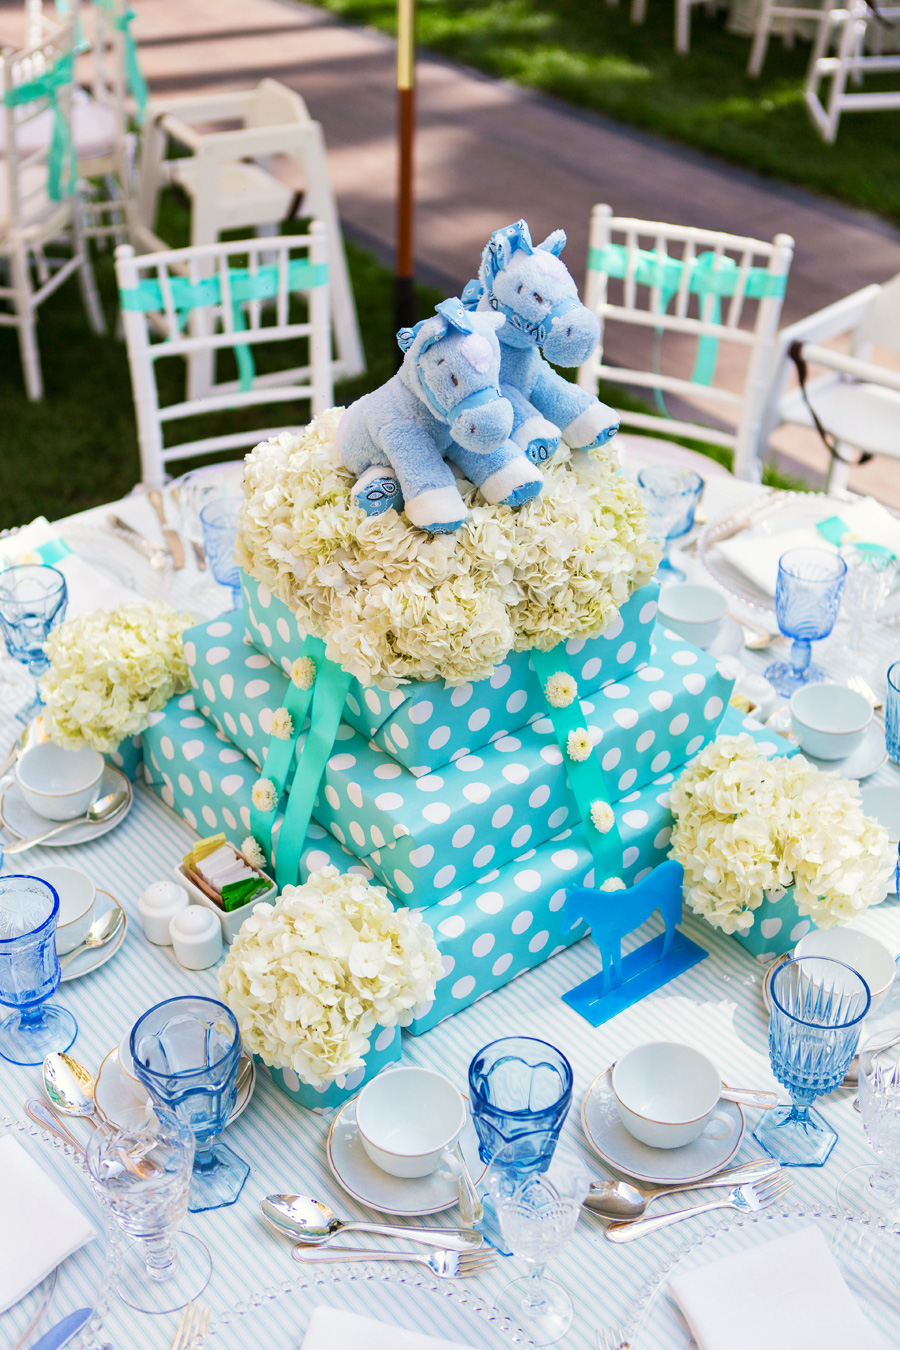 twins-birthday-party-centerpiece-idea Top 10 Most Unique and Funny Wedding Cake Toppers 2017